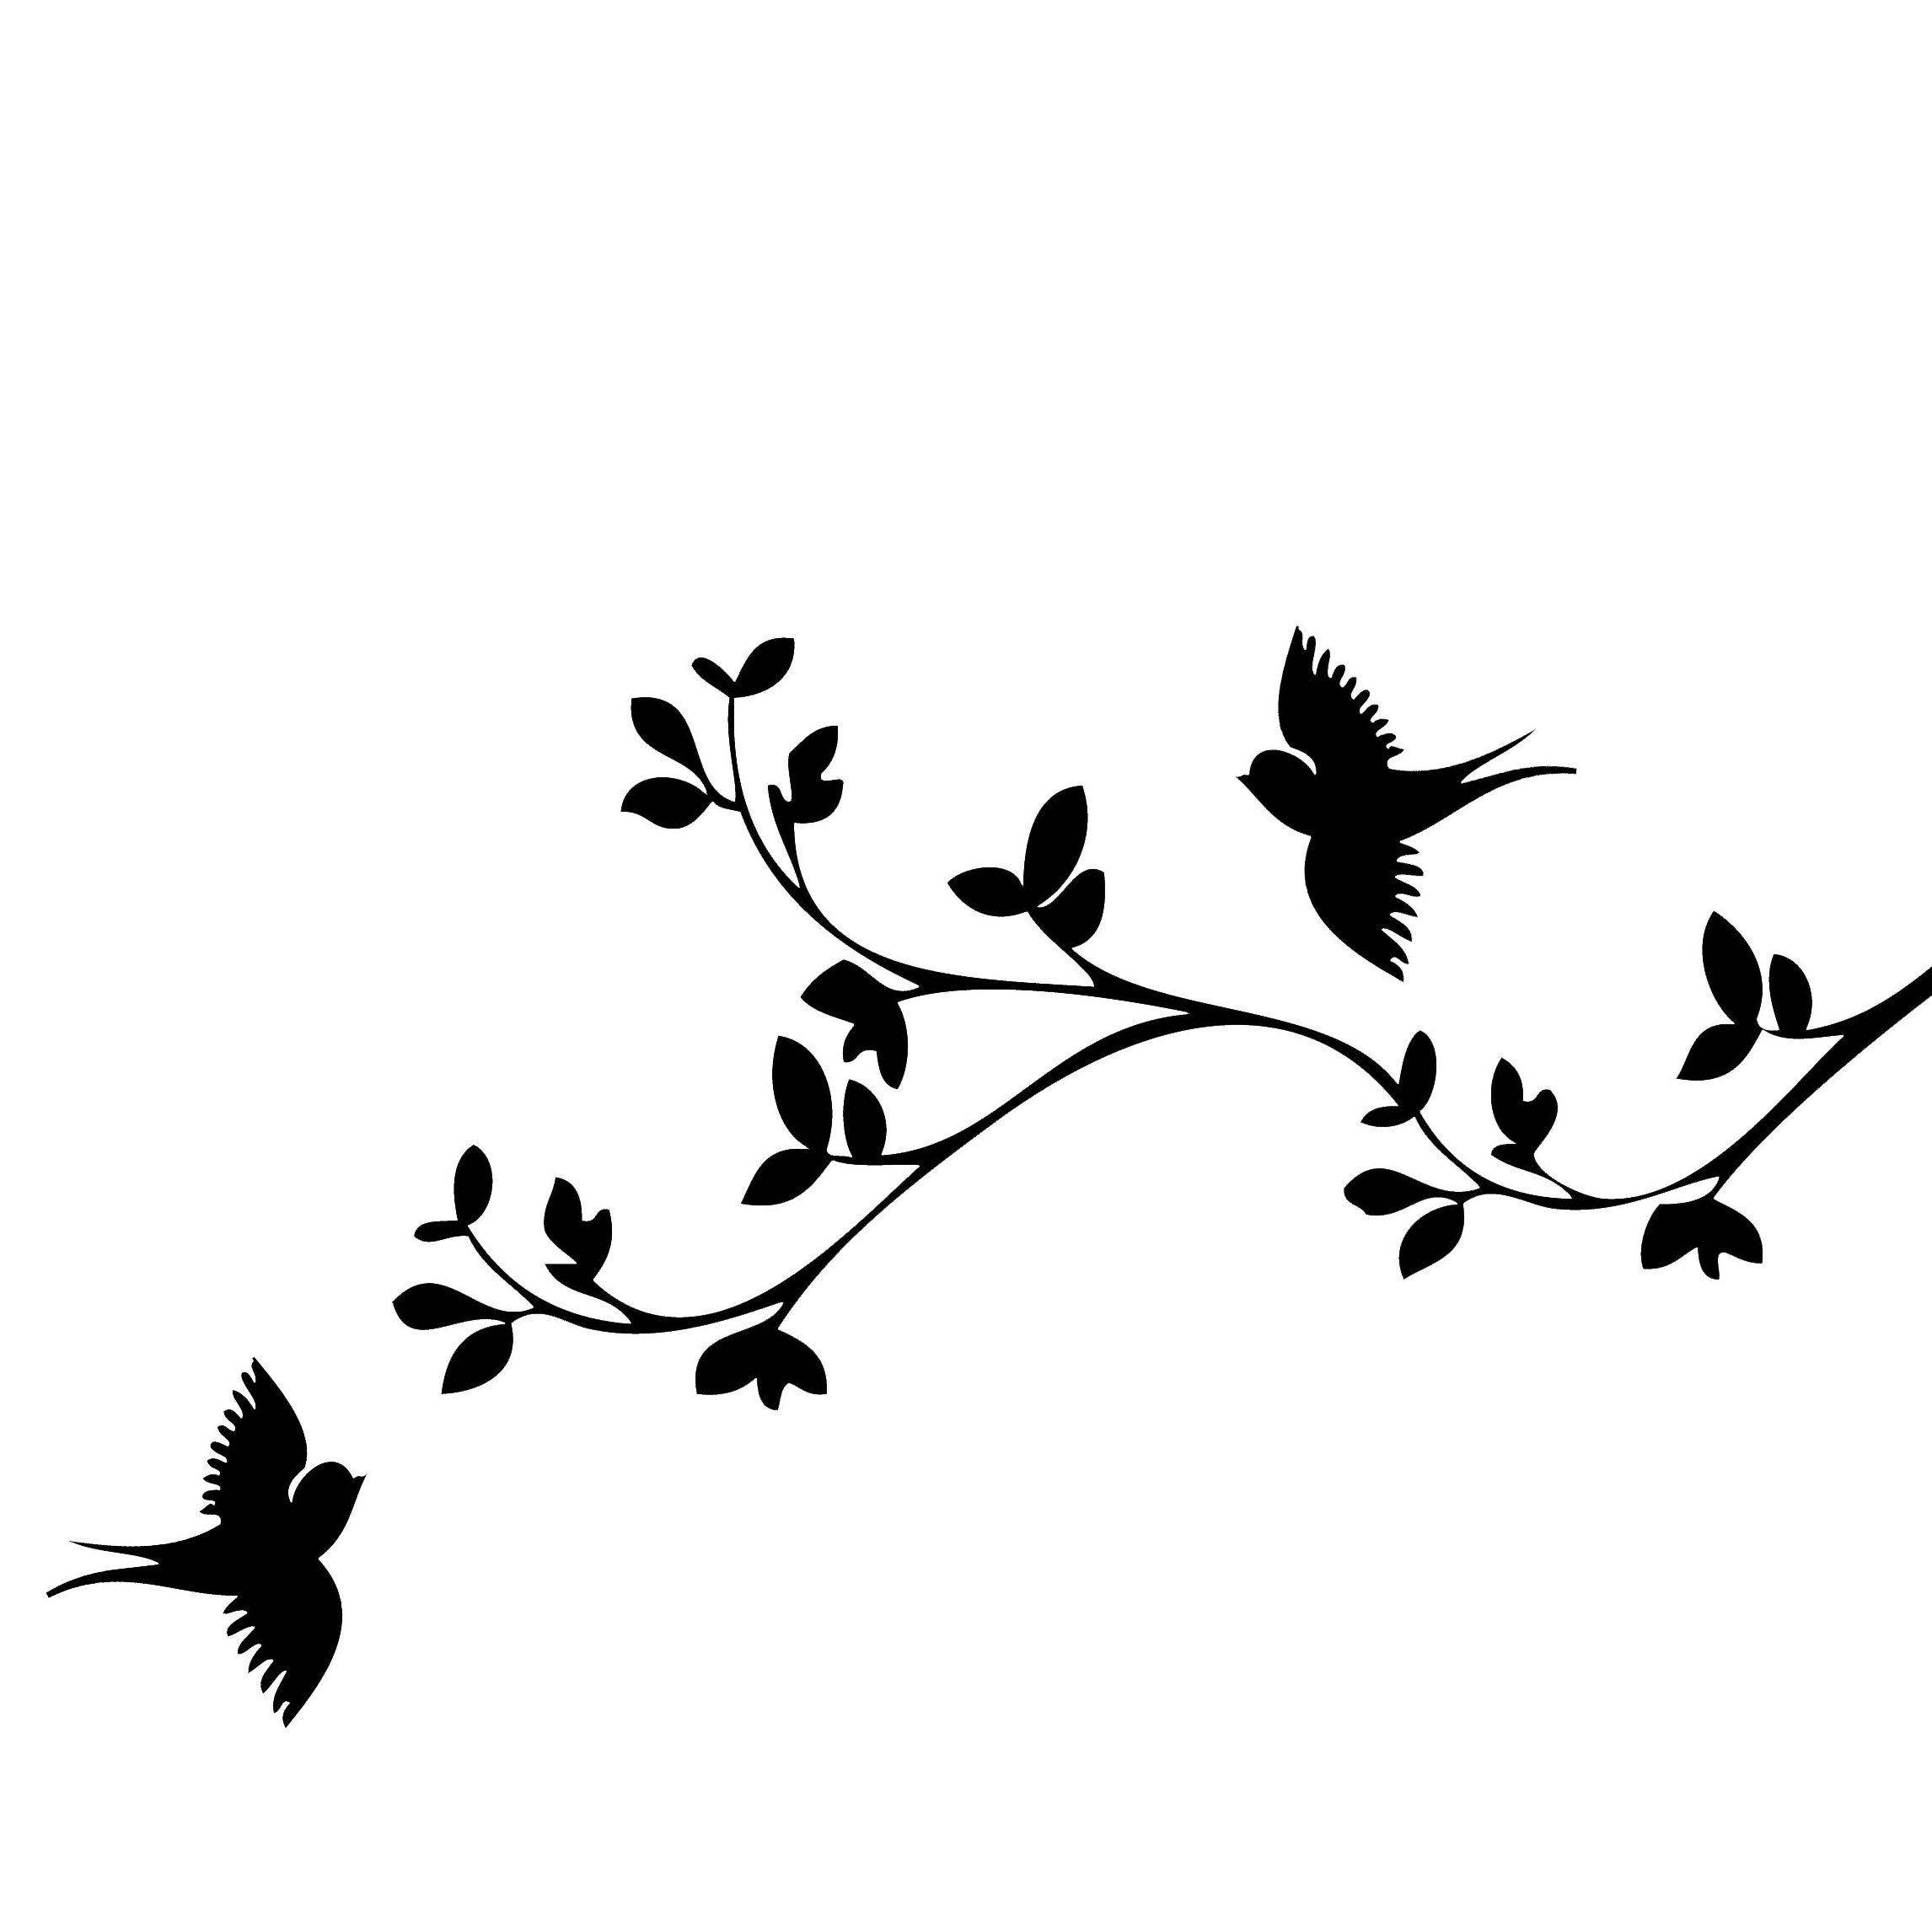 2292x2292 Drawn Lovebird Branch Silhouette Clip Art